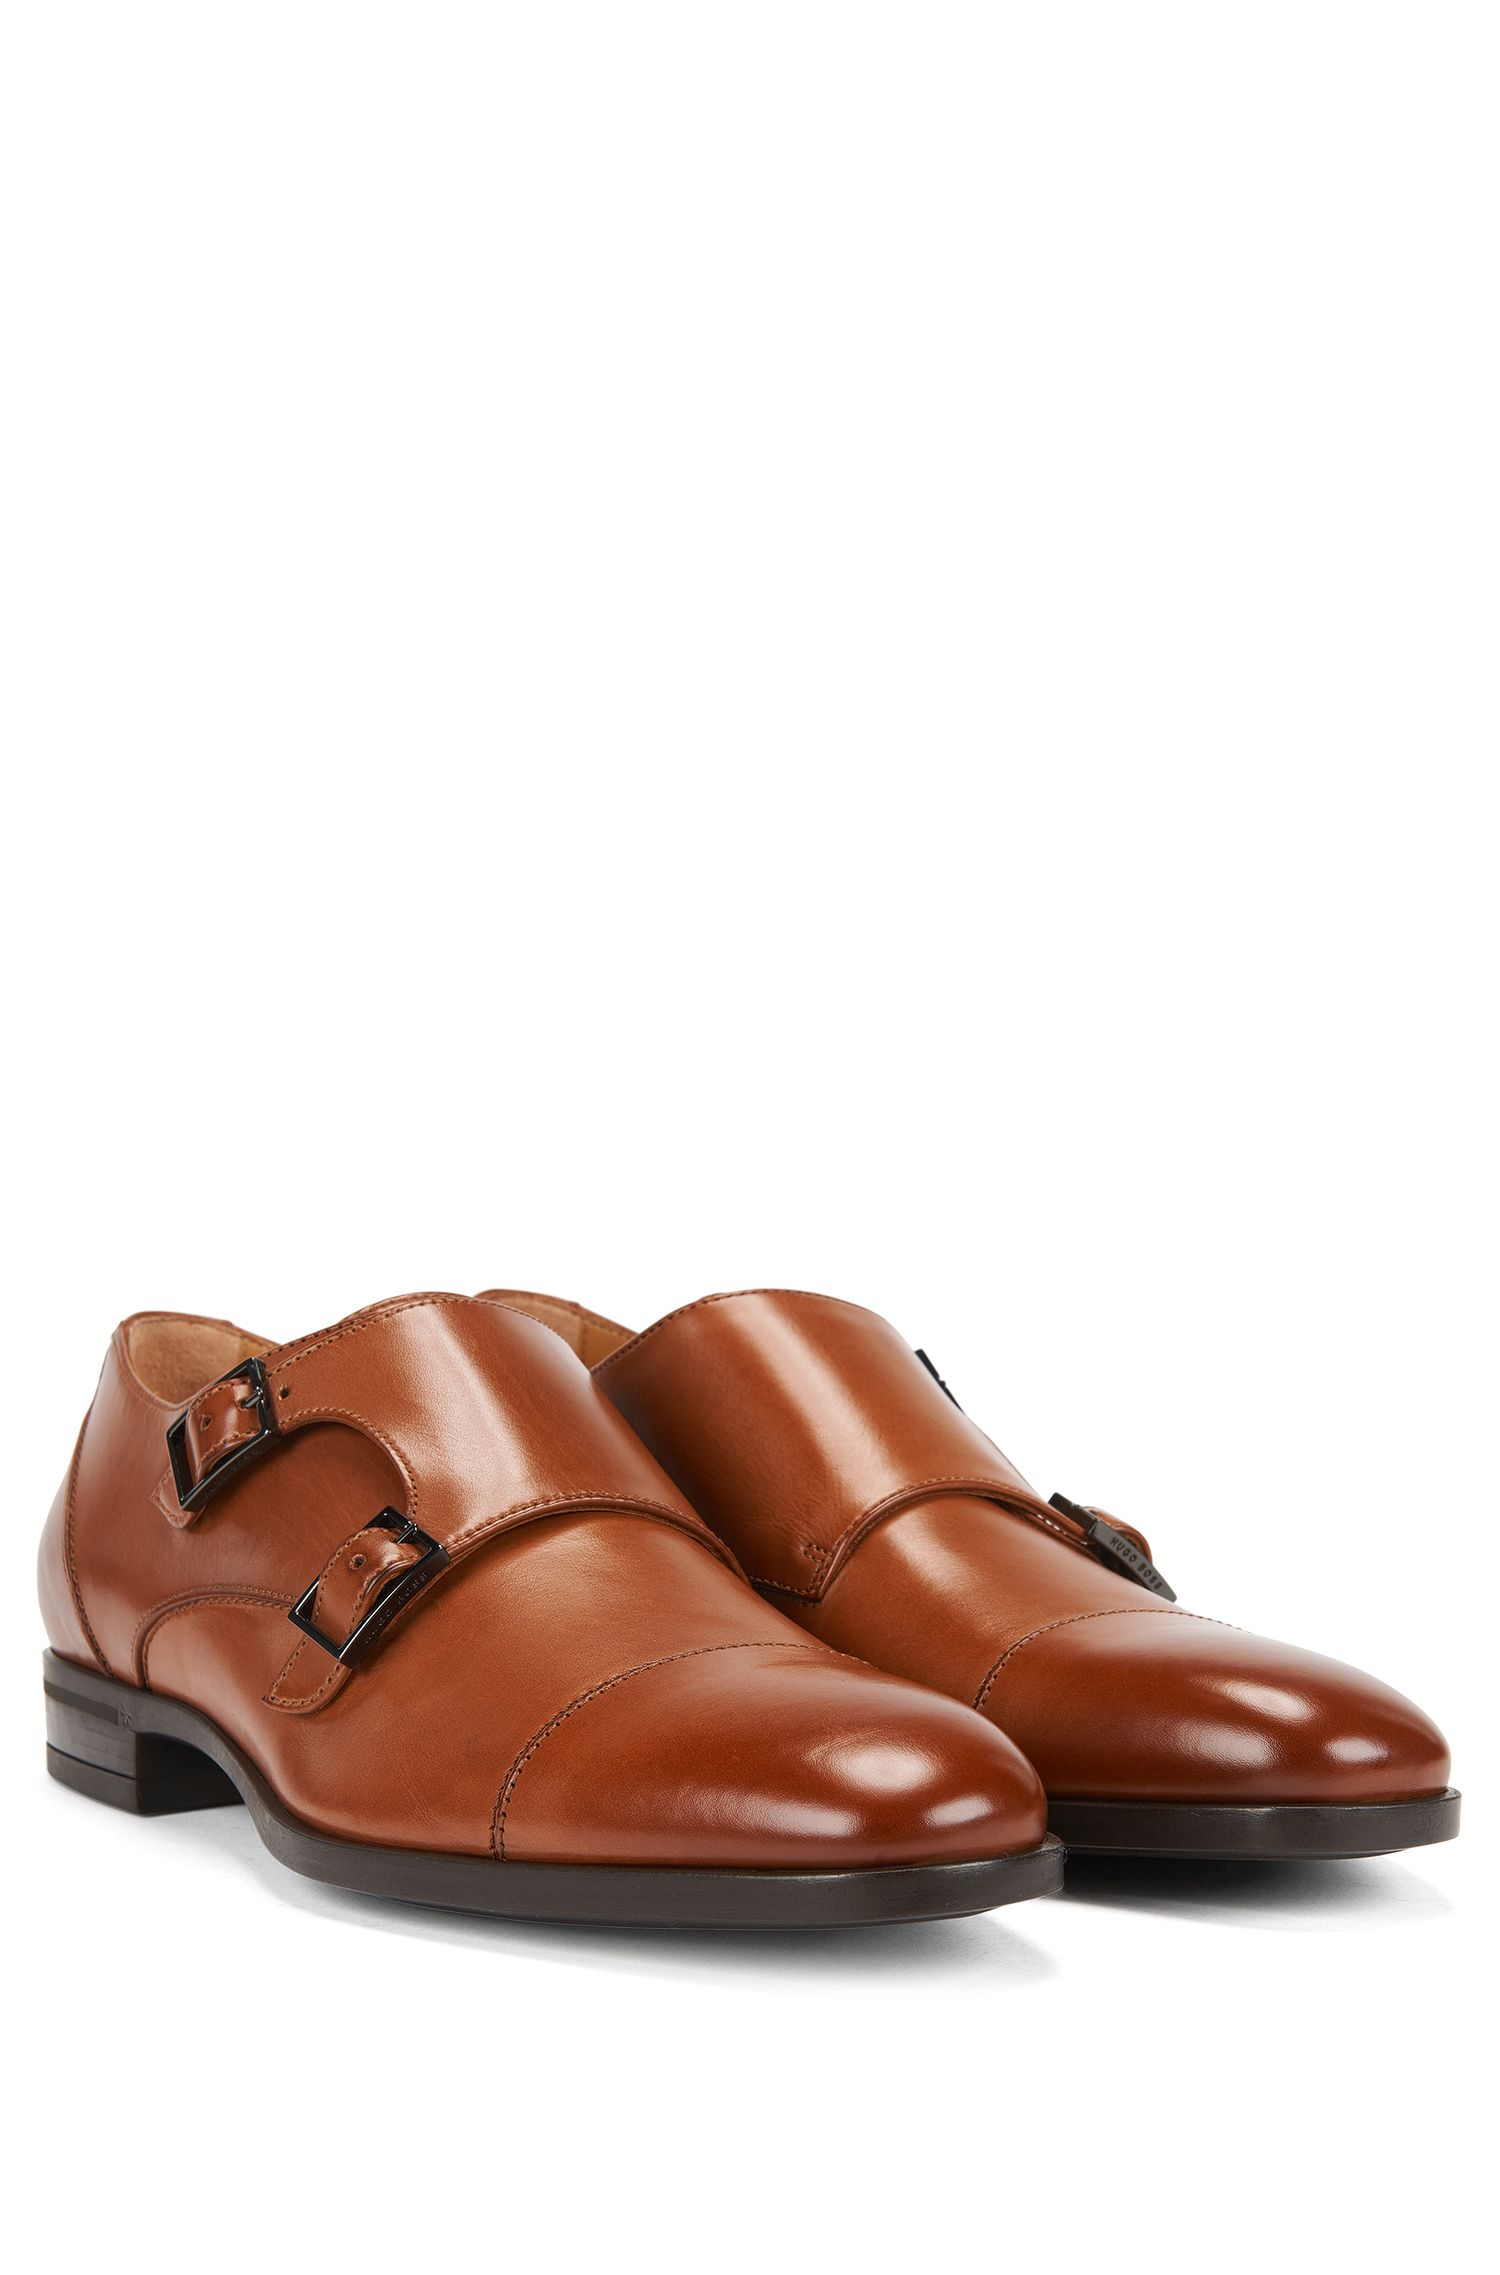 Double-monk shoes in vegetable-tanned leather